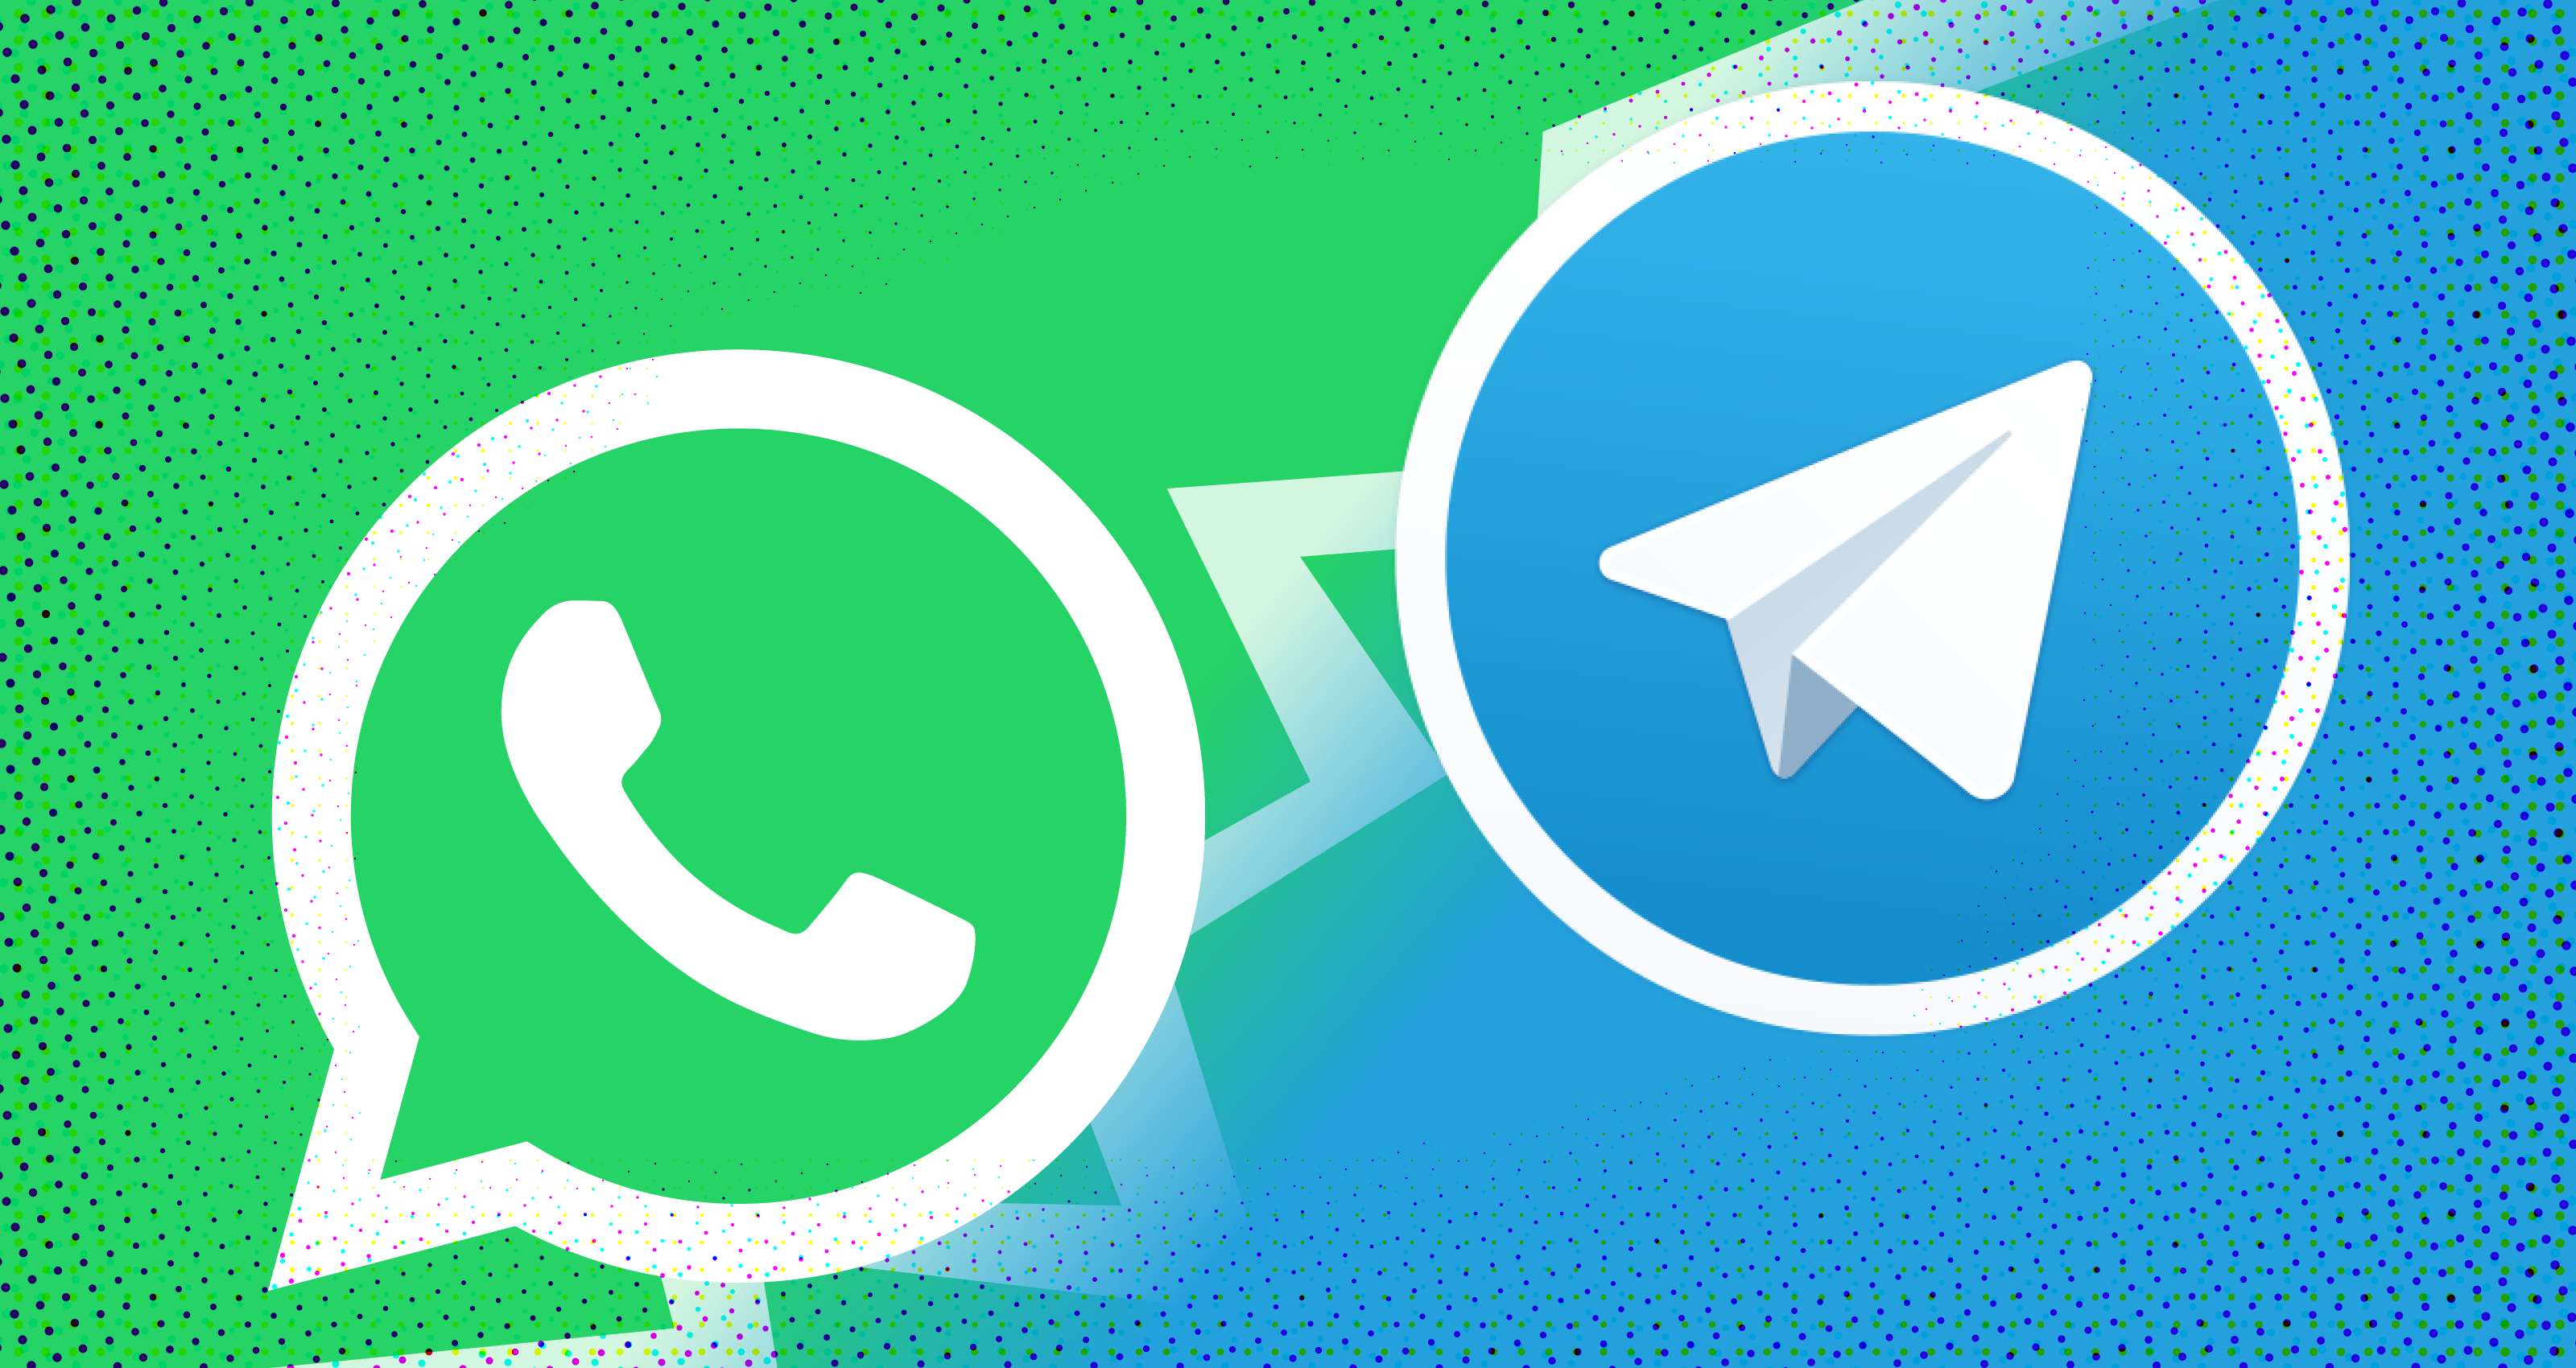 New group chat features arrive on WhatsApp starting today